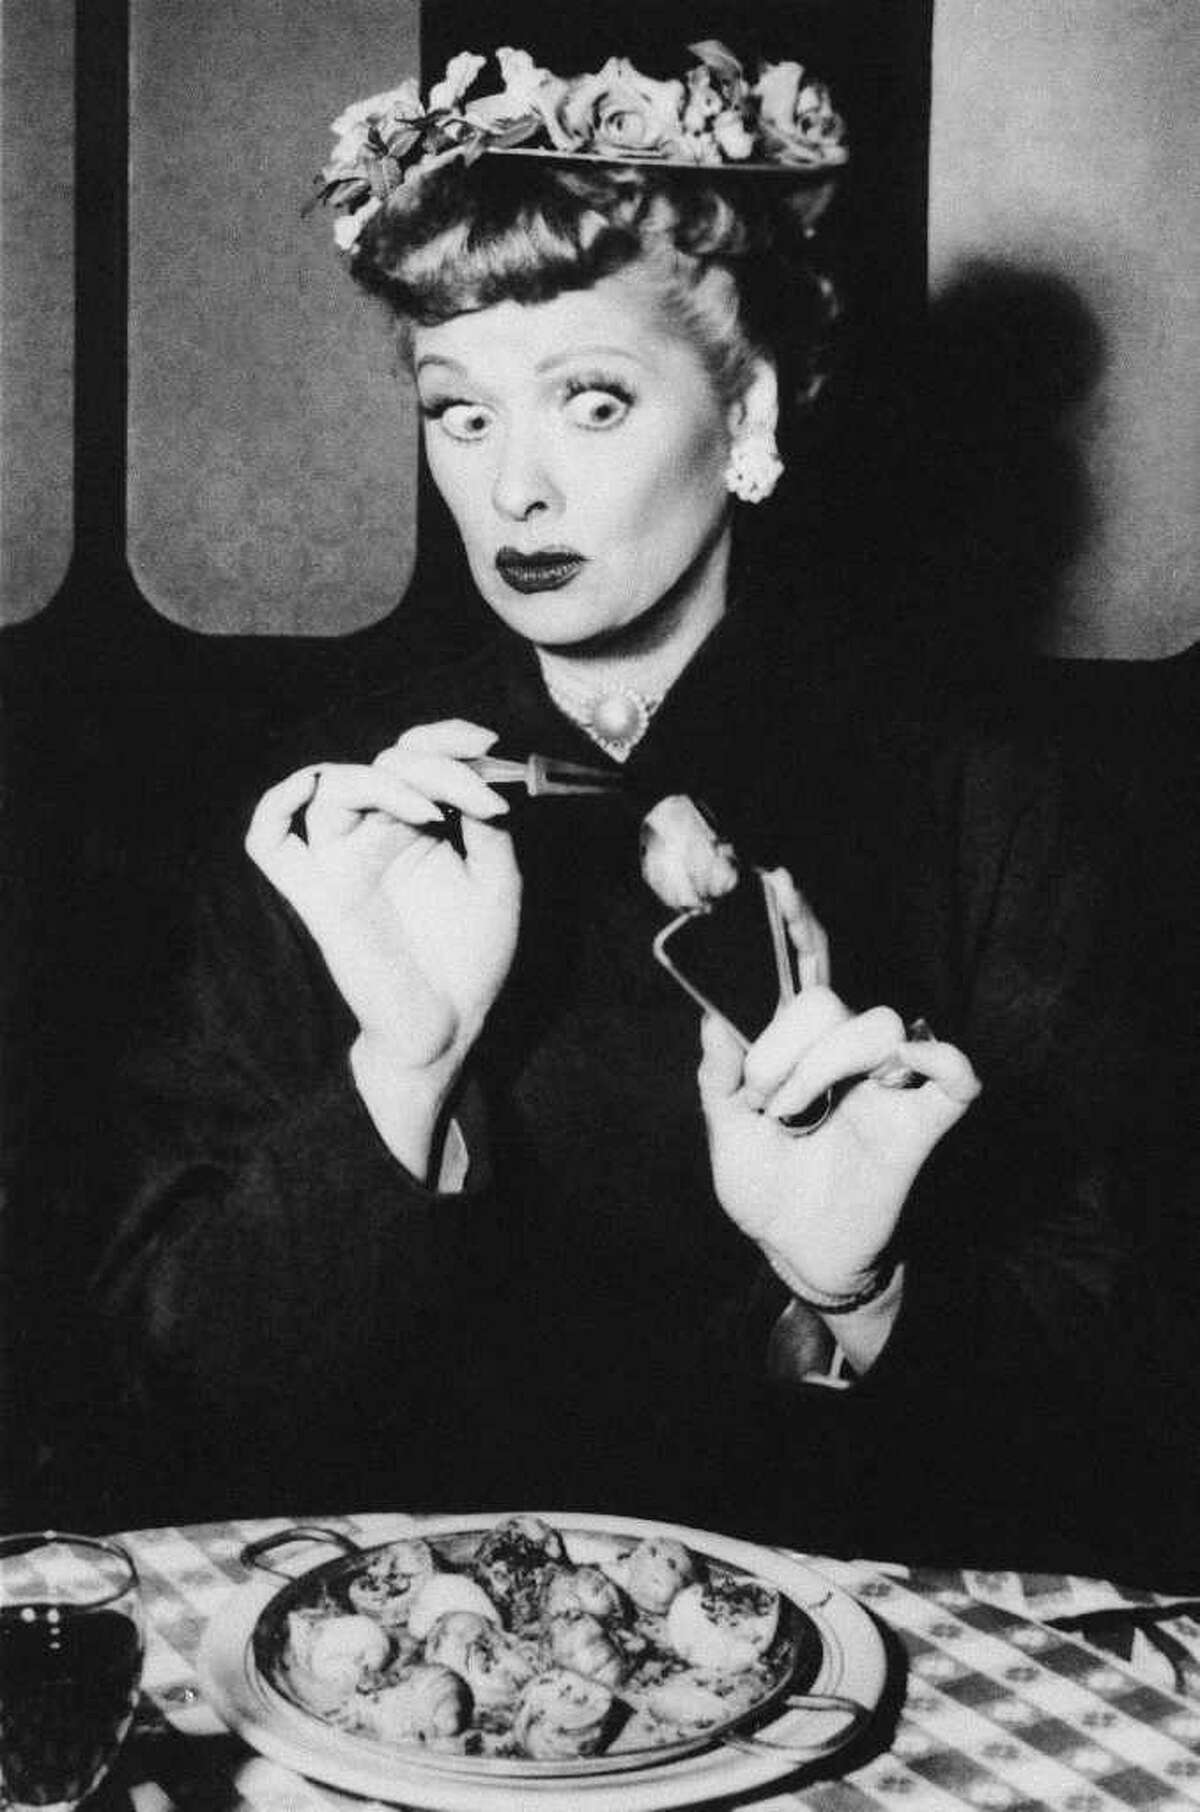 """In this undated TV image originally released by CBS, Lucille Ball is shown in a scene from her comedy series, """"I Love Lucy."""" Ball, who died on April 26, 1989, would have celebrated her 100th birthday on Saturday, Aug. 6, 2011. (AP Photo/CBS, file)"""